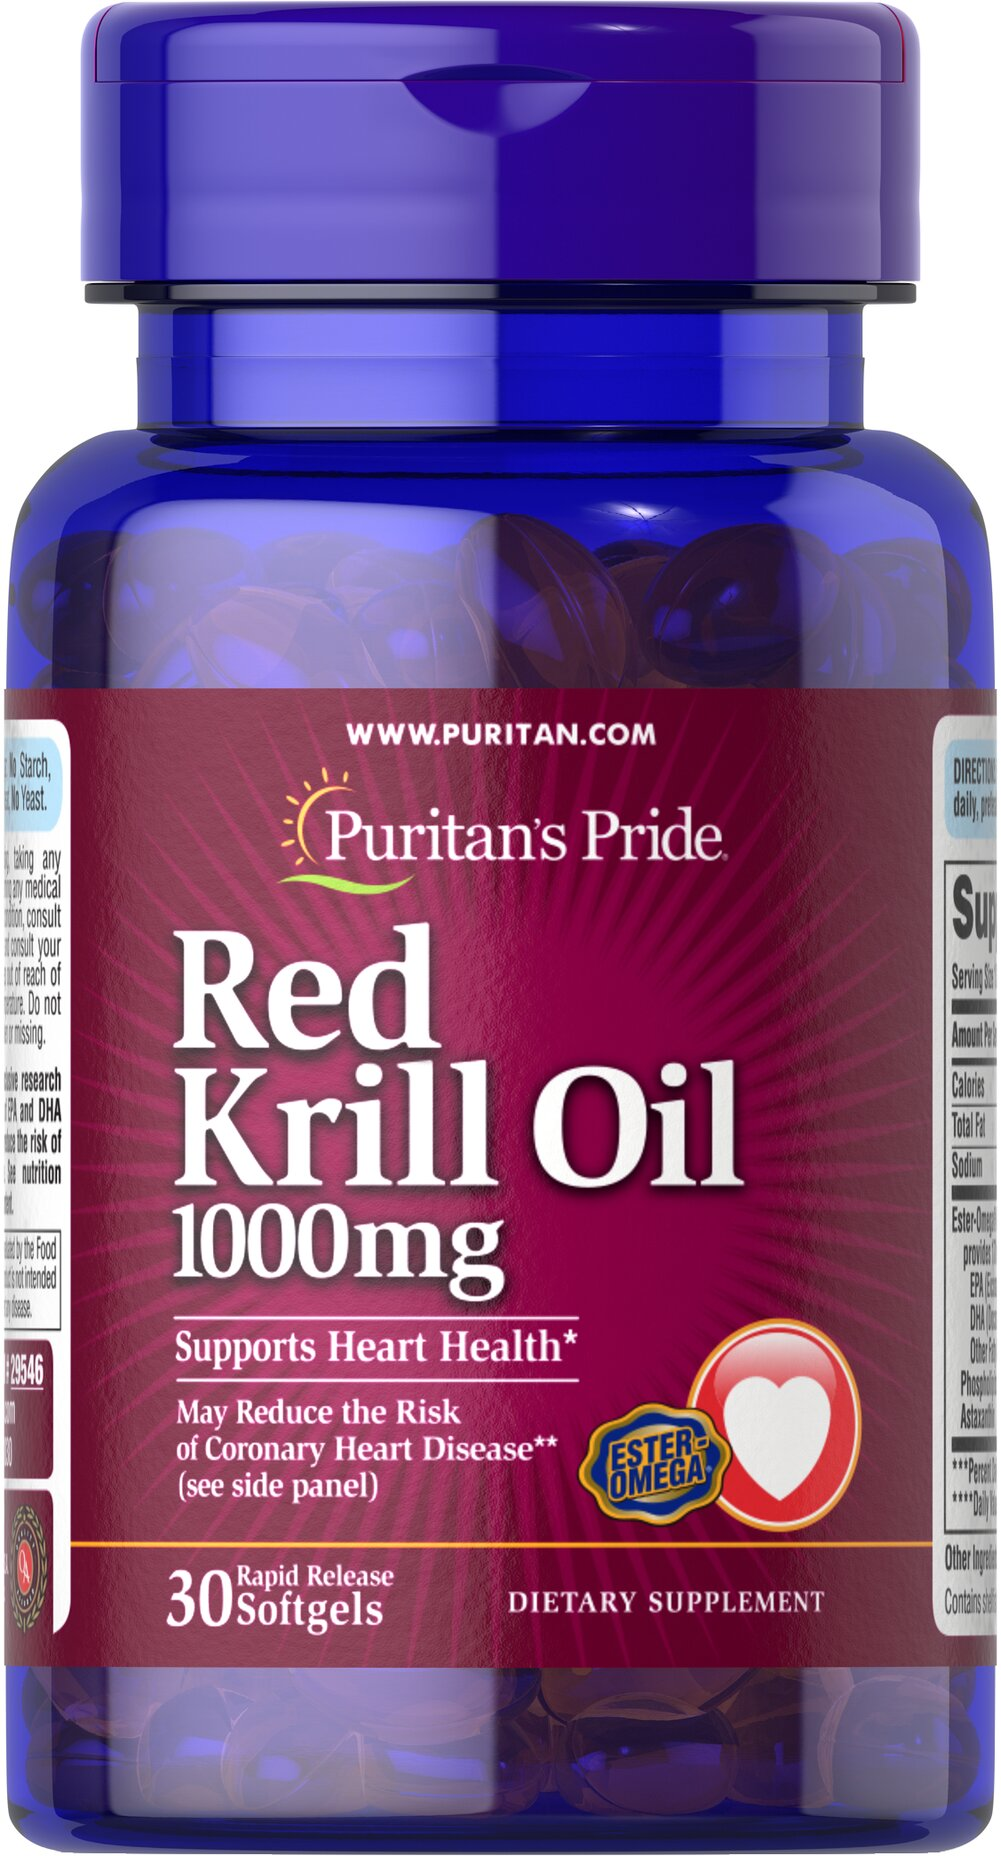 "Red Krill Oil 1000 mg <p><strong>With Naturally Occurring Astaxanthin</strong></p><p>Harvested from the icy waters of Antarctica.</p><p>May reduce the risk of coronary heart disease◊</p><p>Supports a healthy heart**</p><p>Provides you with Omega-3 fatty acids — the ""good"" fats important for cellular and metabolic health**</p><p>Rapid release softgels facilitate quick absorption</p> 30 Softgels 1000 mg $29.39"